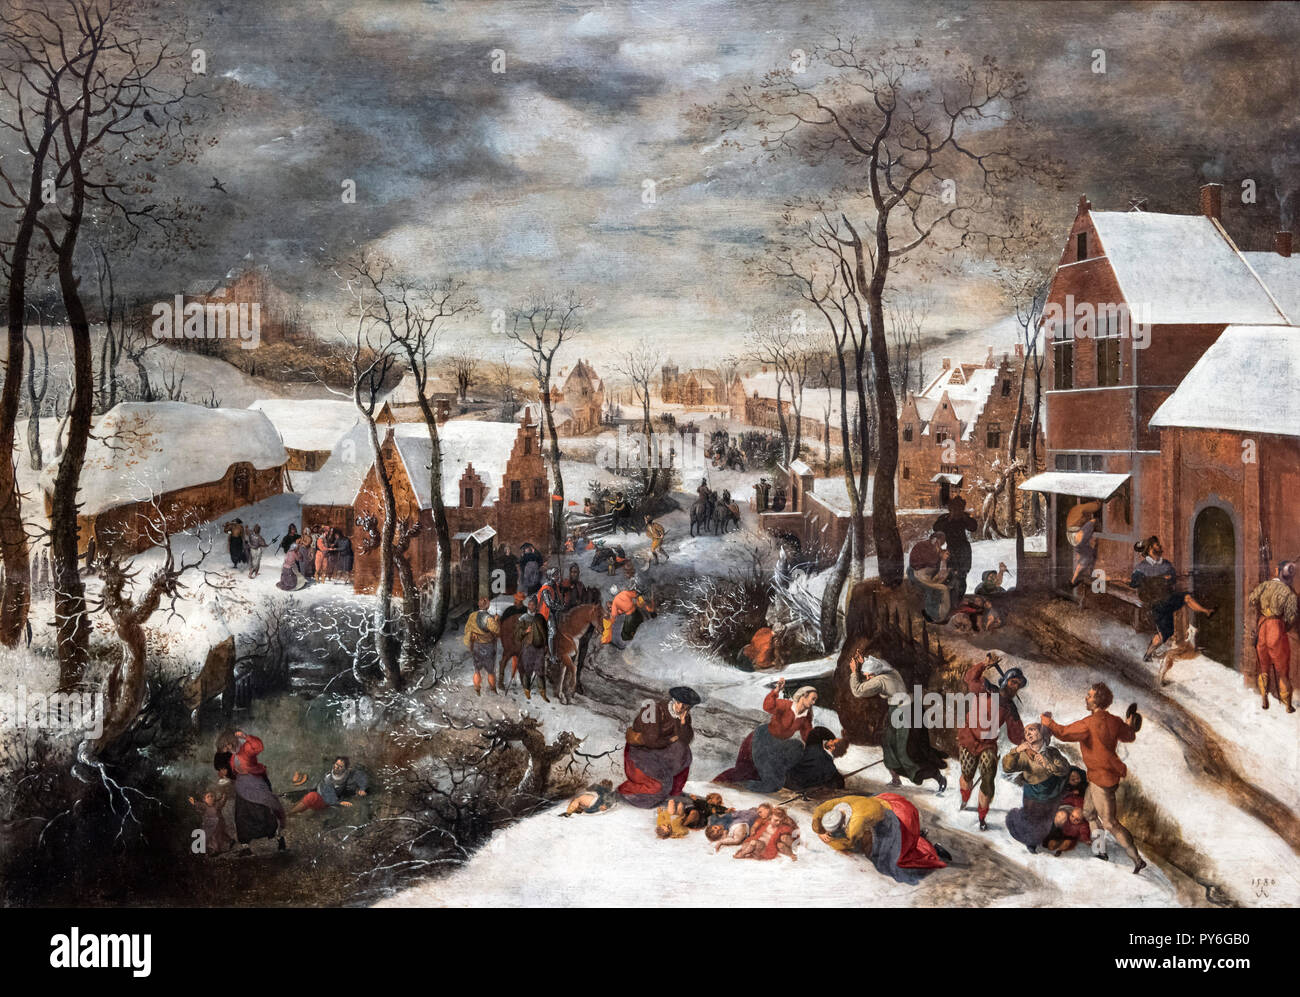 The Massacre of the Innocents by Lucas van Valckenborch the Elder (c.1535-1597), oil on panel, 1586 - Stock Image